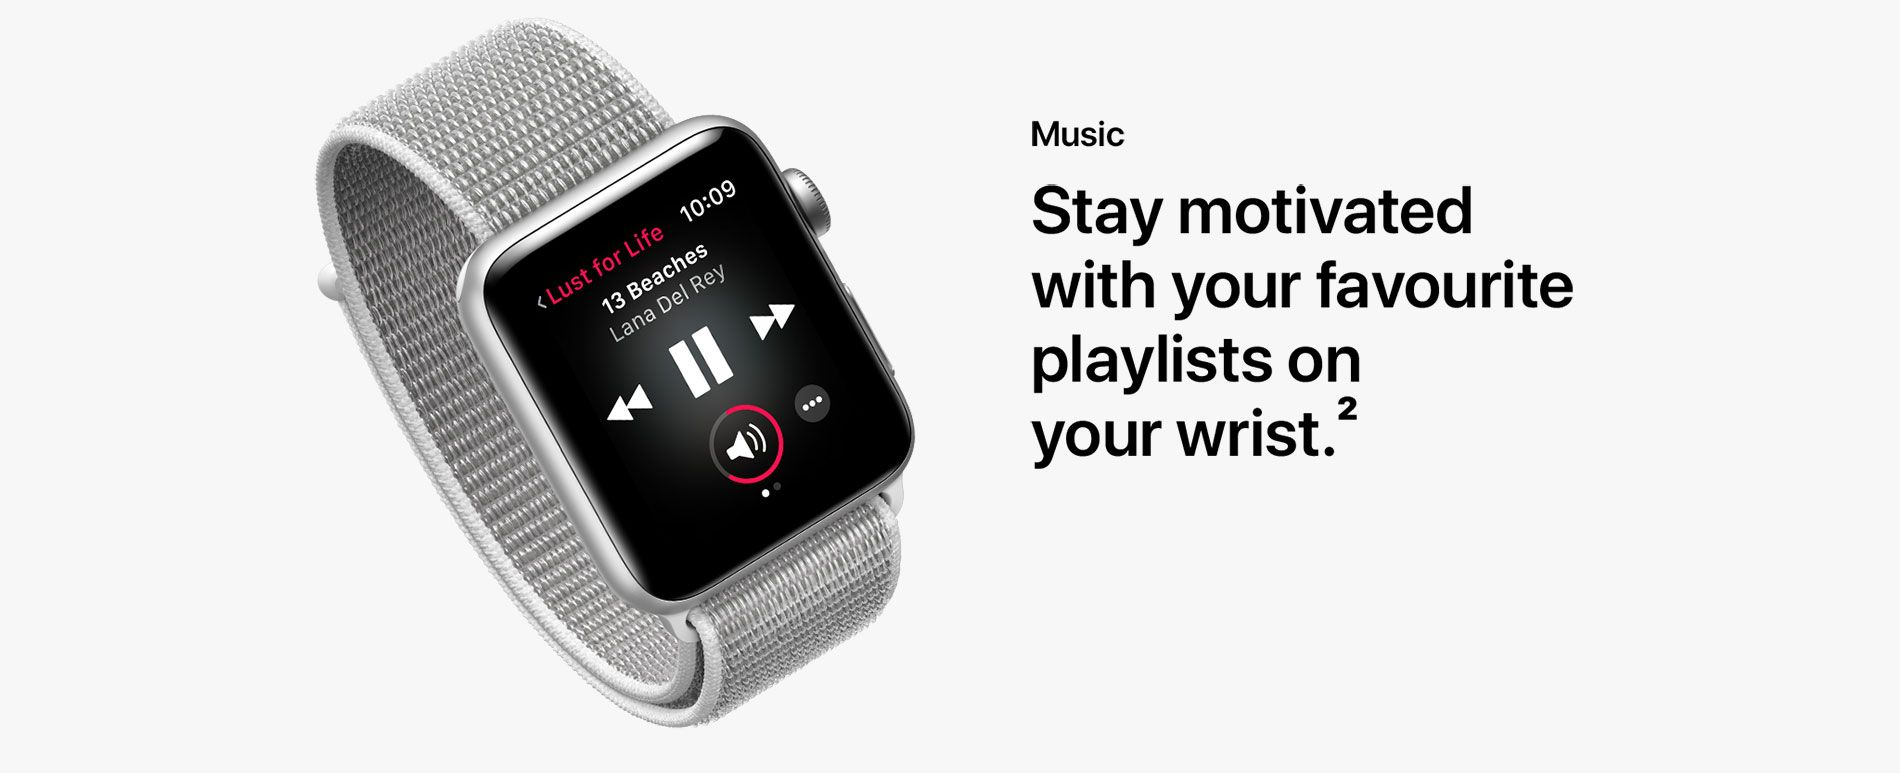 Music - Stay motivated with your favourite playlists on your wrist